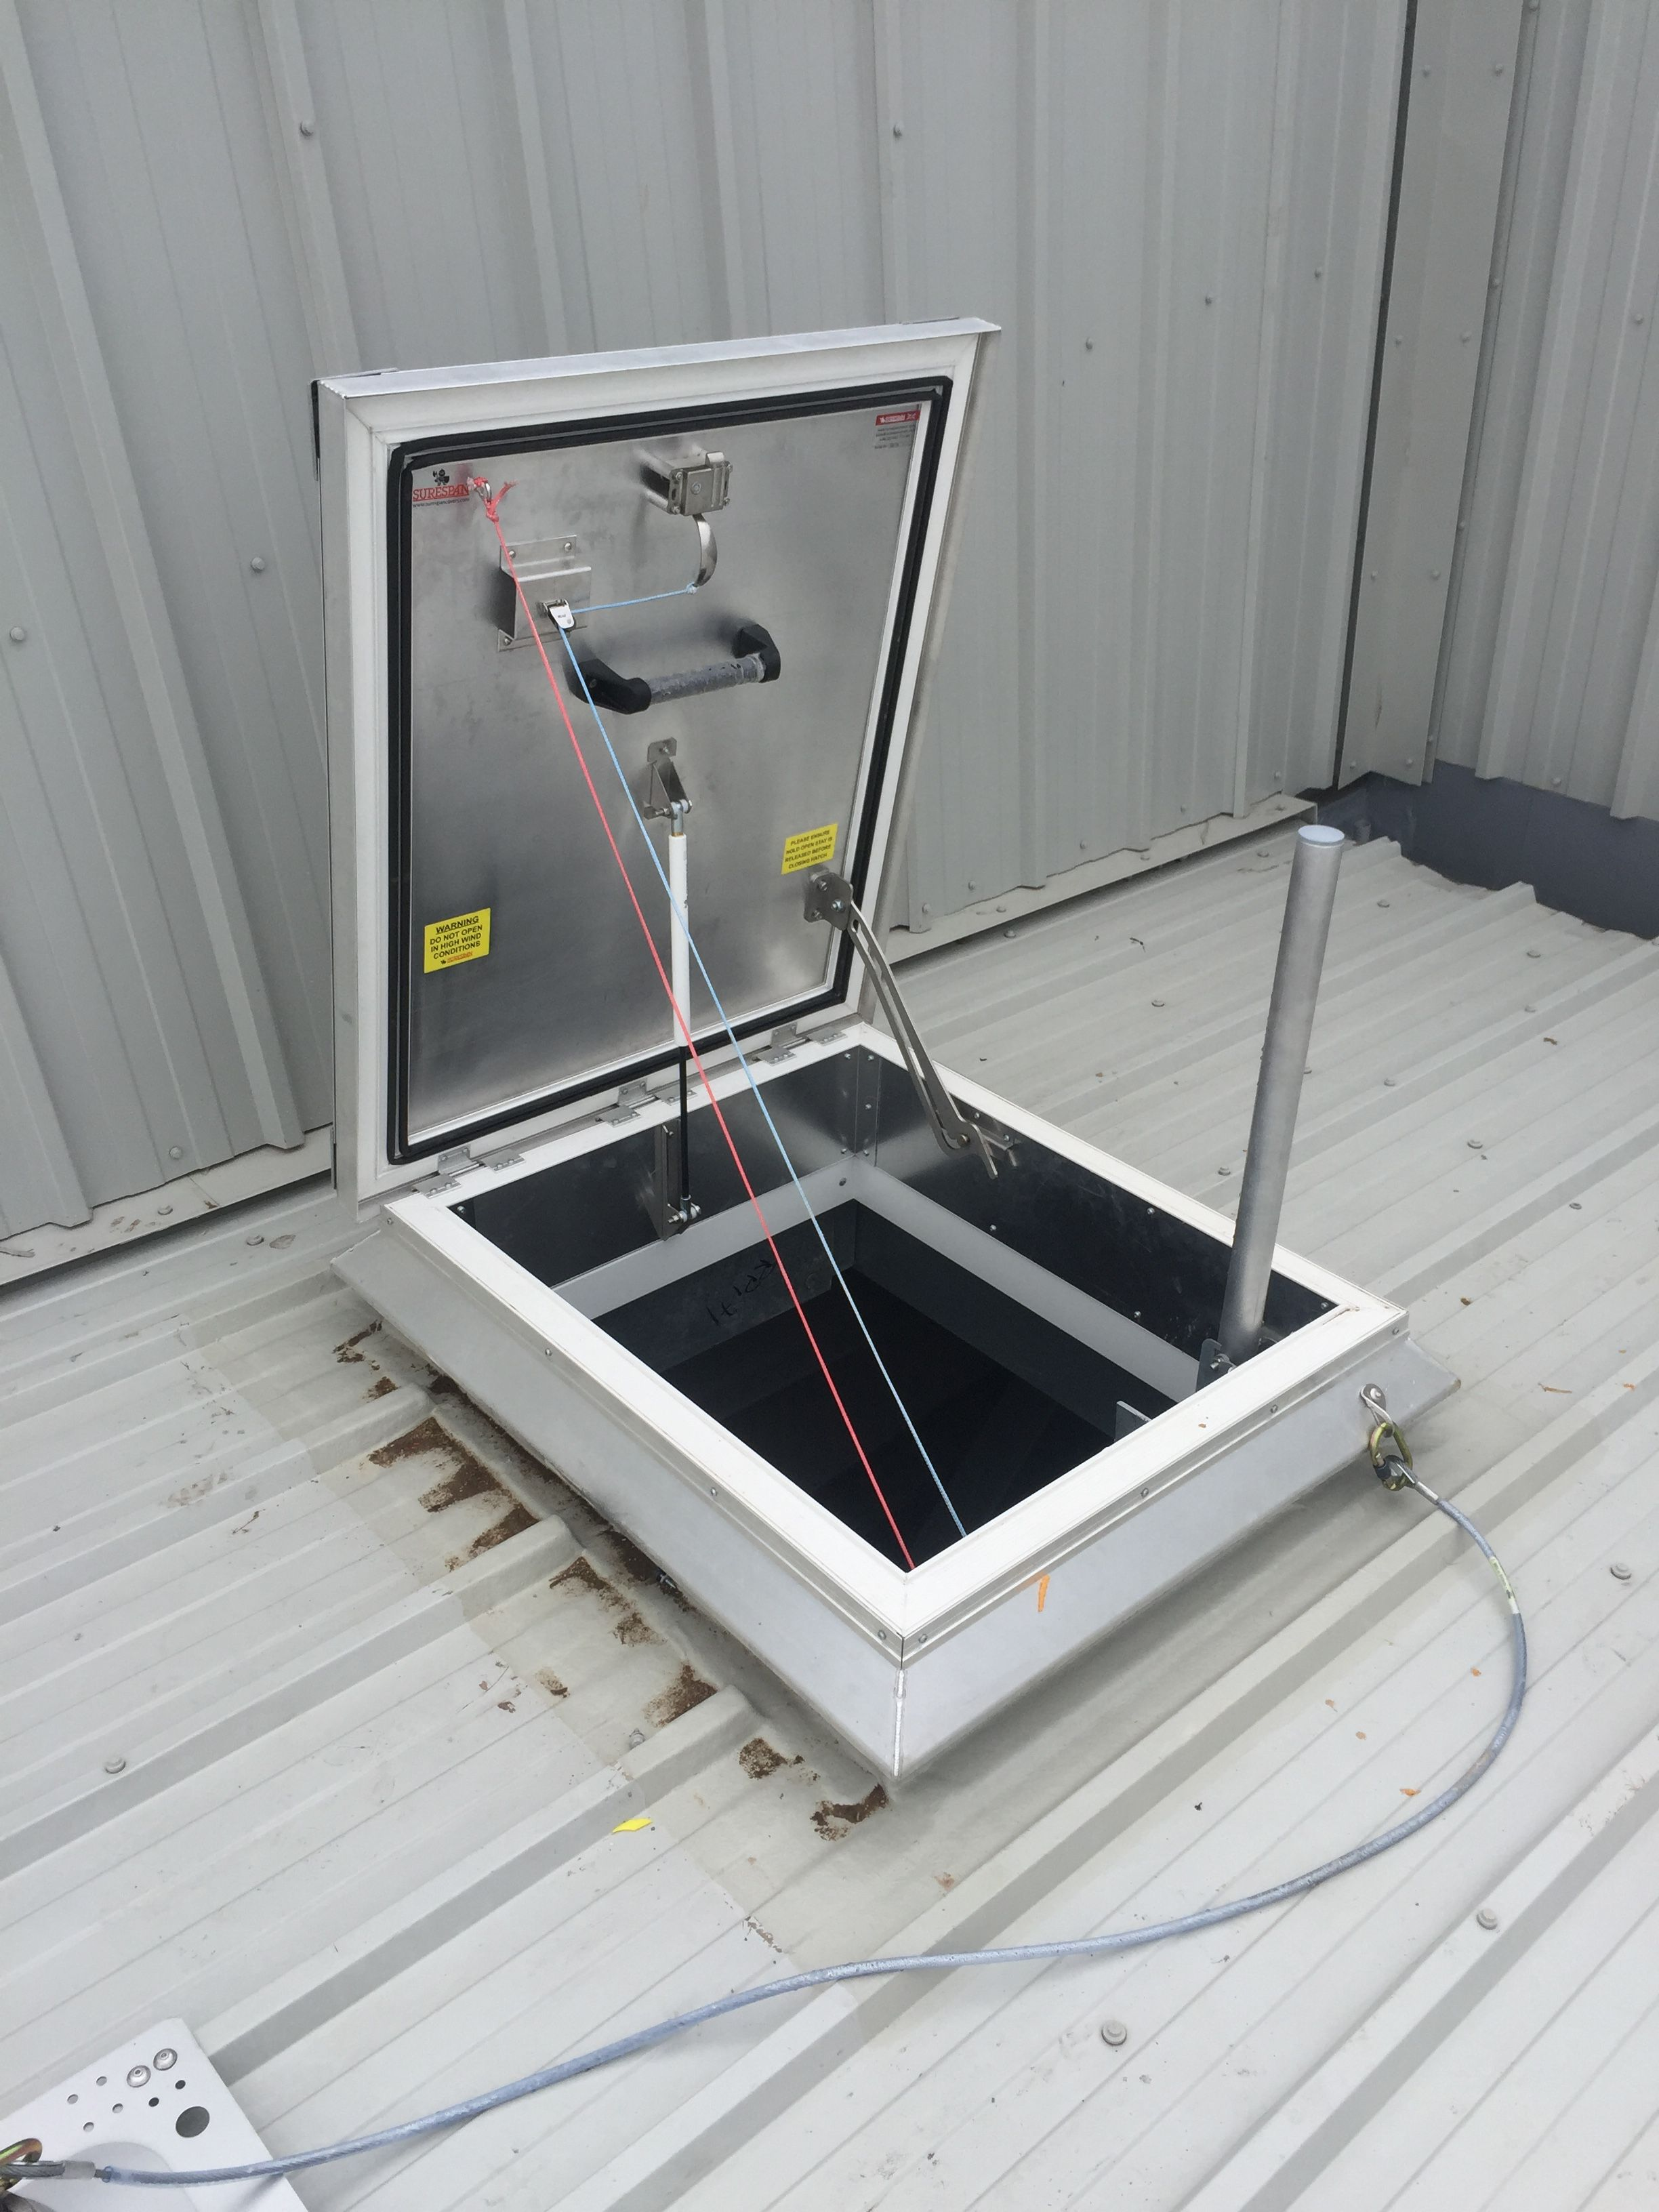 Surespan Aluminium Roof Hatch With Cable Release Mechanism